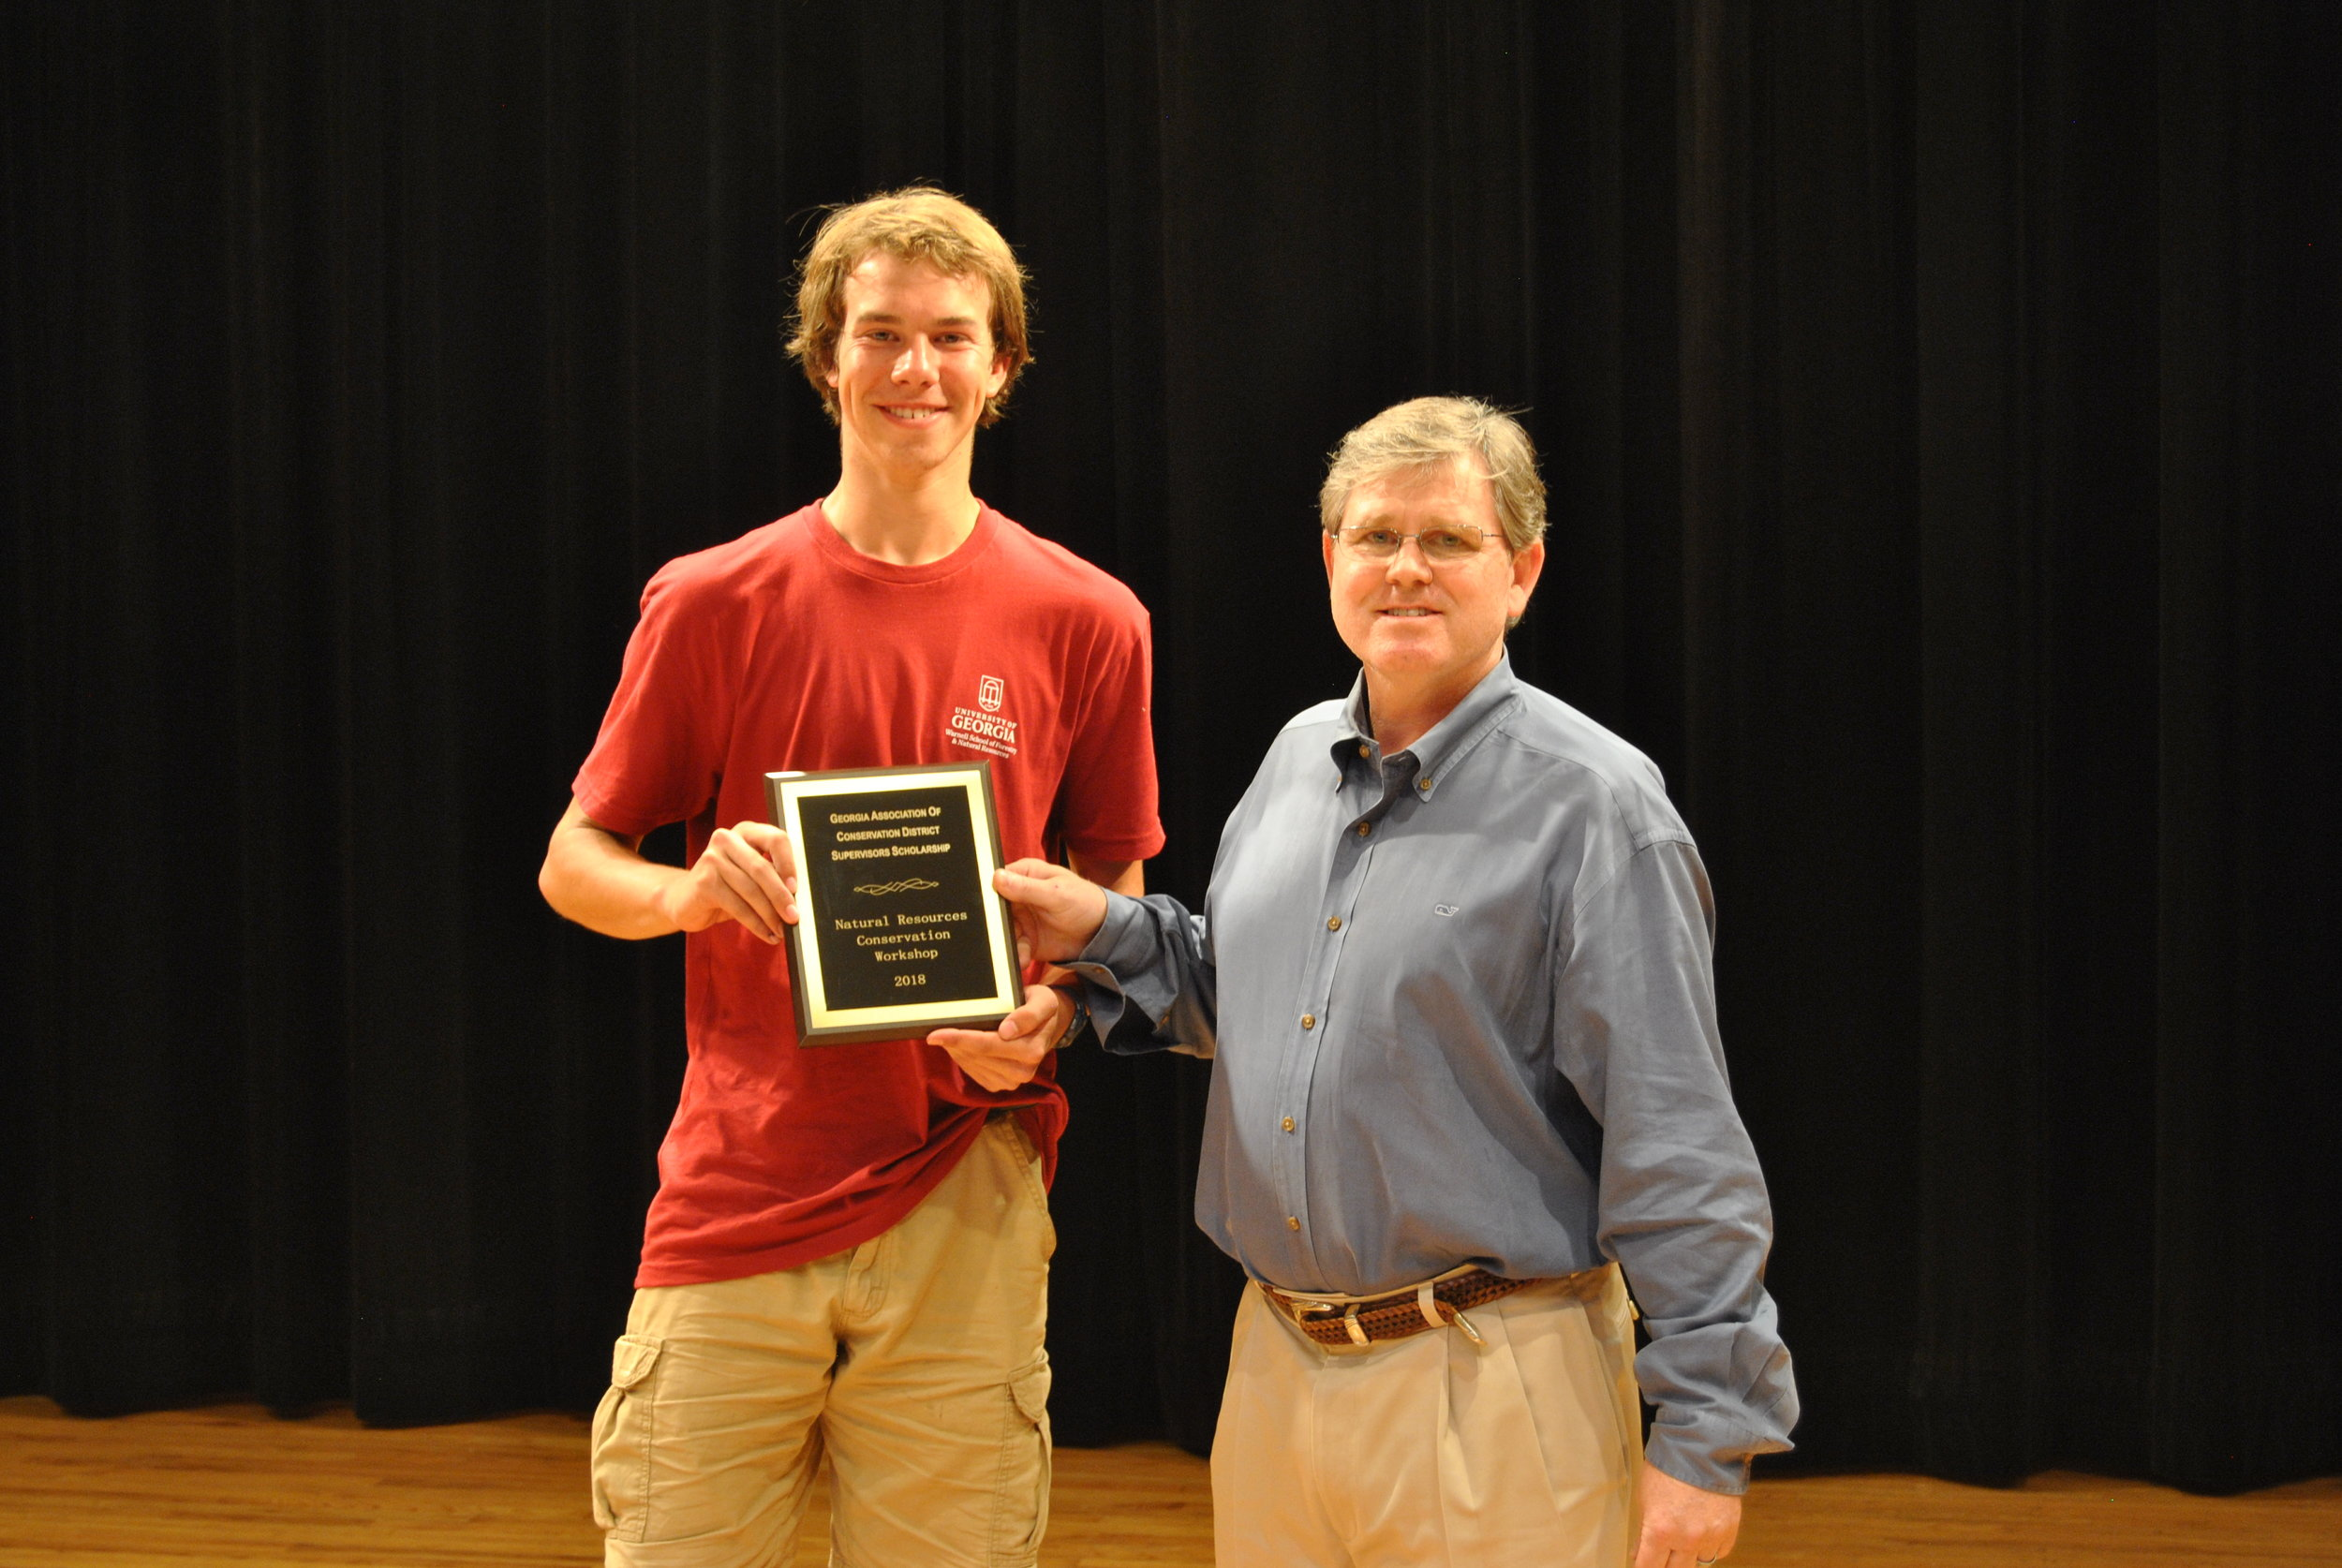 GACD was the lead sponsor of this year's  Natural Resources Conservation Workshop ! We provided a $6,500 scholarship to the highest scoring individual.  The GACD Scholarship winner for 2018 is Rhys Medcalfe! Rhys is a rising Junior at  John S. Davidson Fine Arts Magnet School  in Augusta, GA. Pictured with Rhys is GACD President Woody Snell.